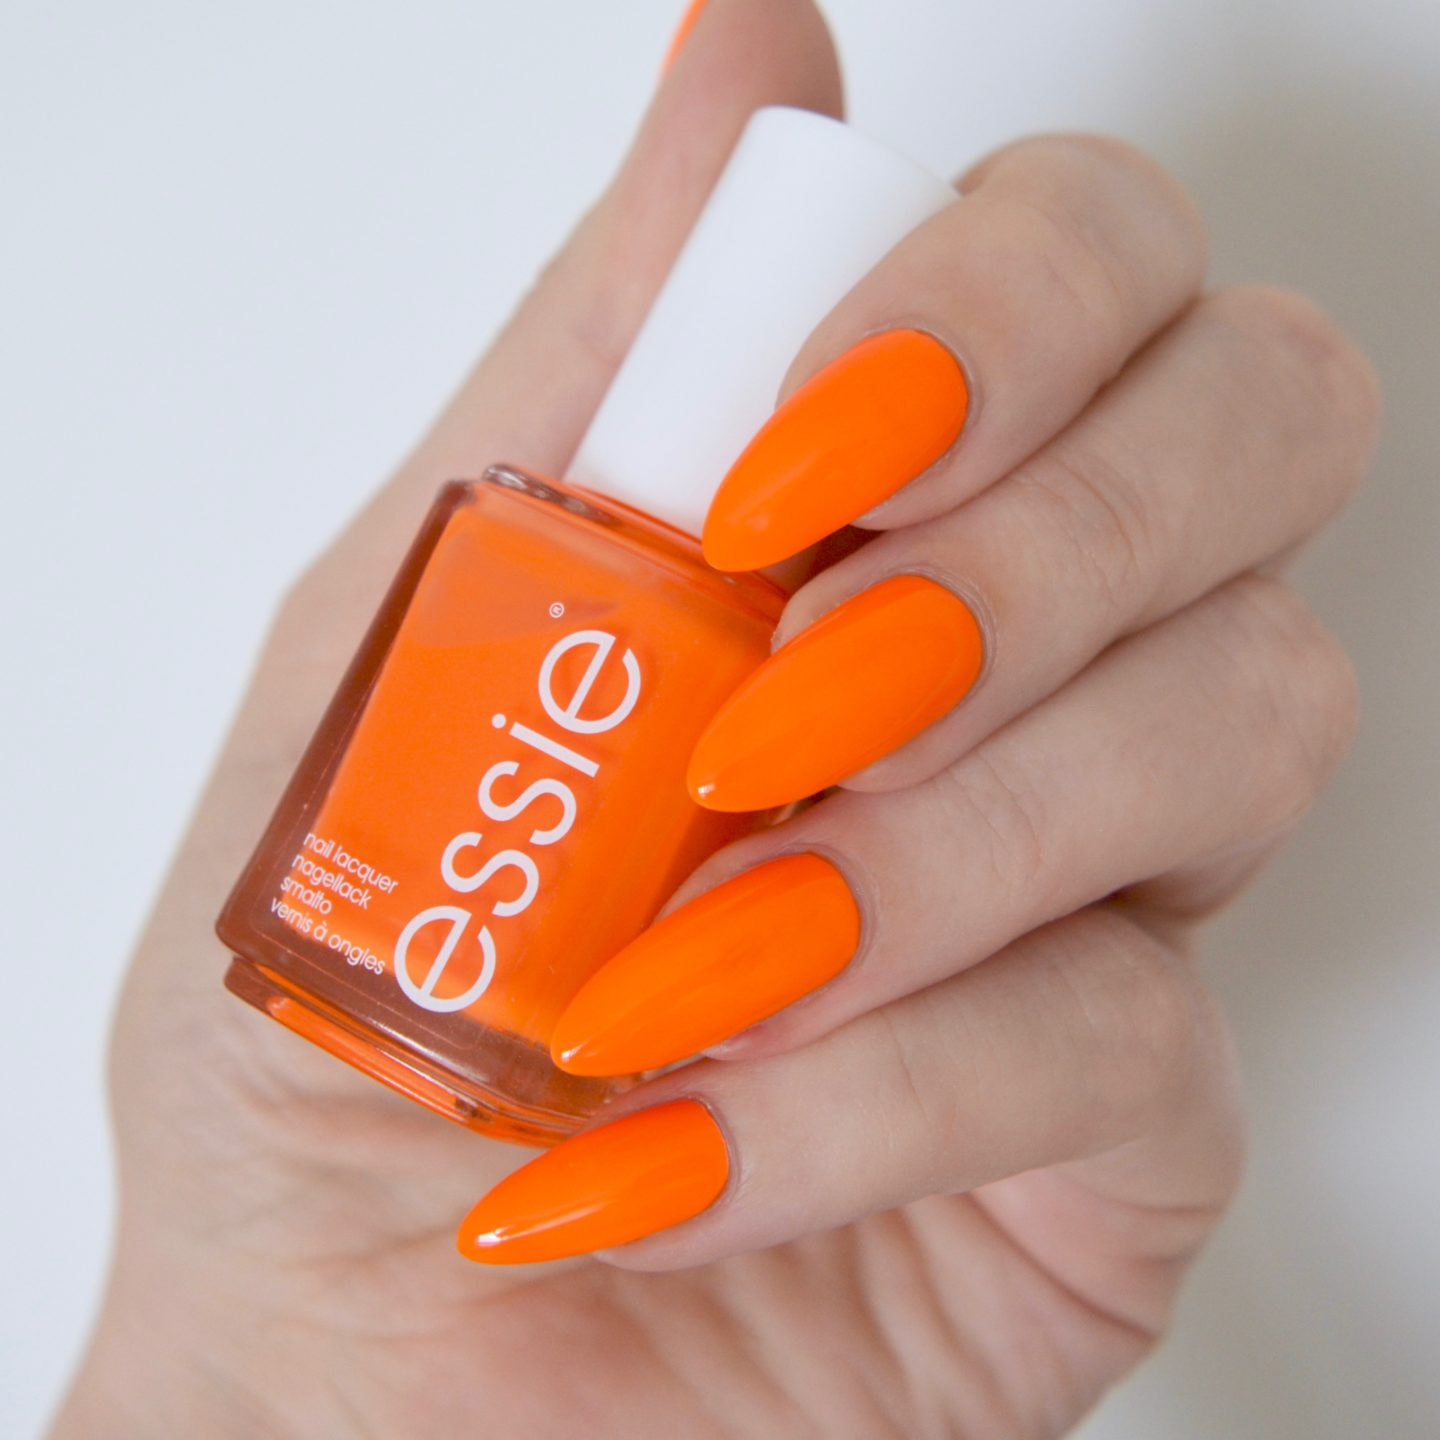 Essie Neon 2017 Collection 'mark on miami'